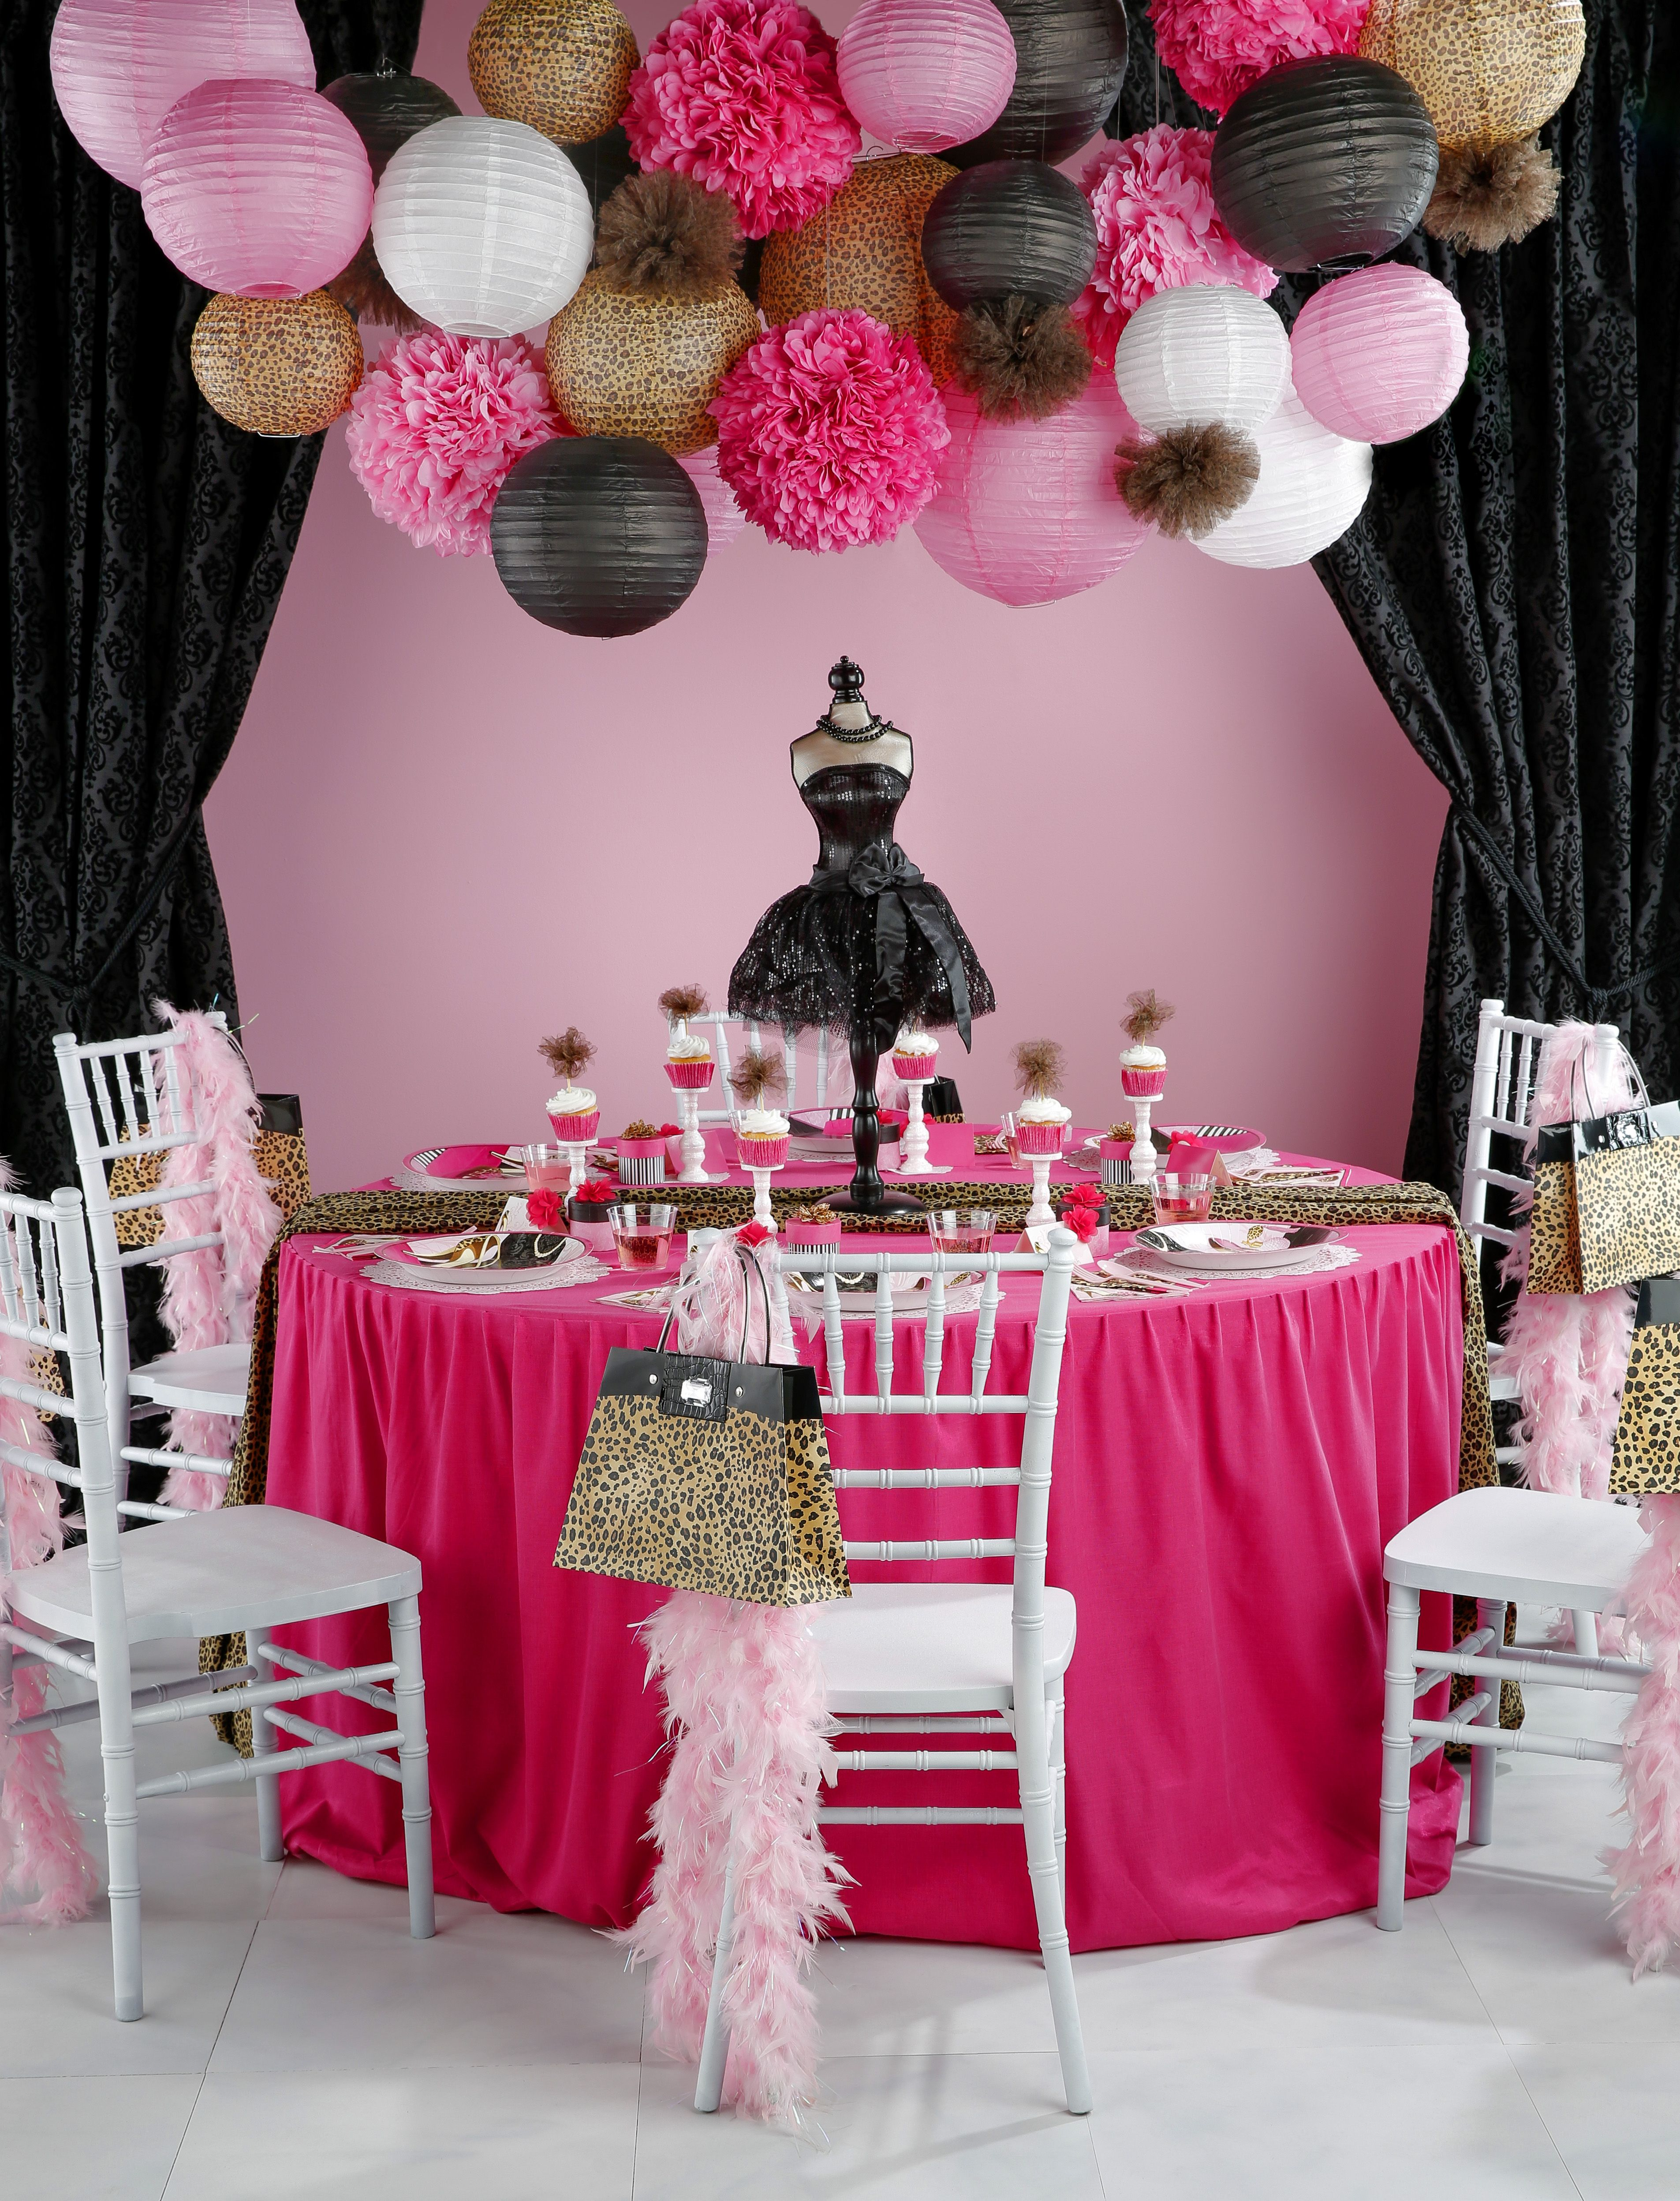 Go Glam With This Pink And Leopard Print Party Theme Would Be A Cute Baby Shower Too